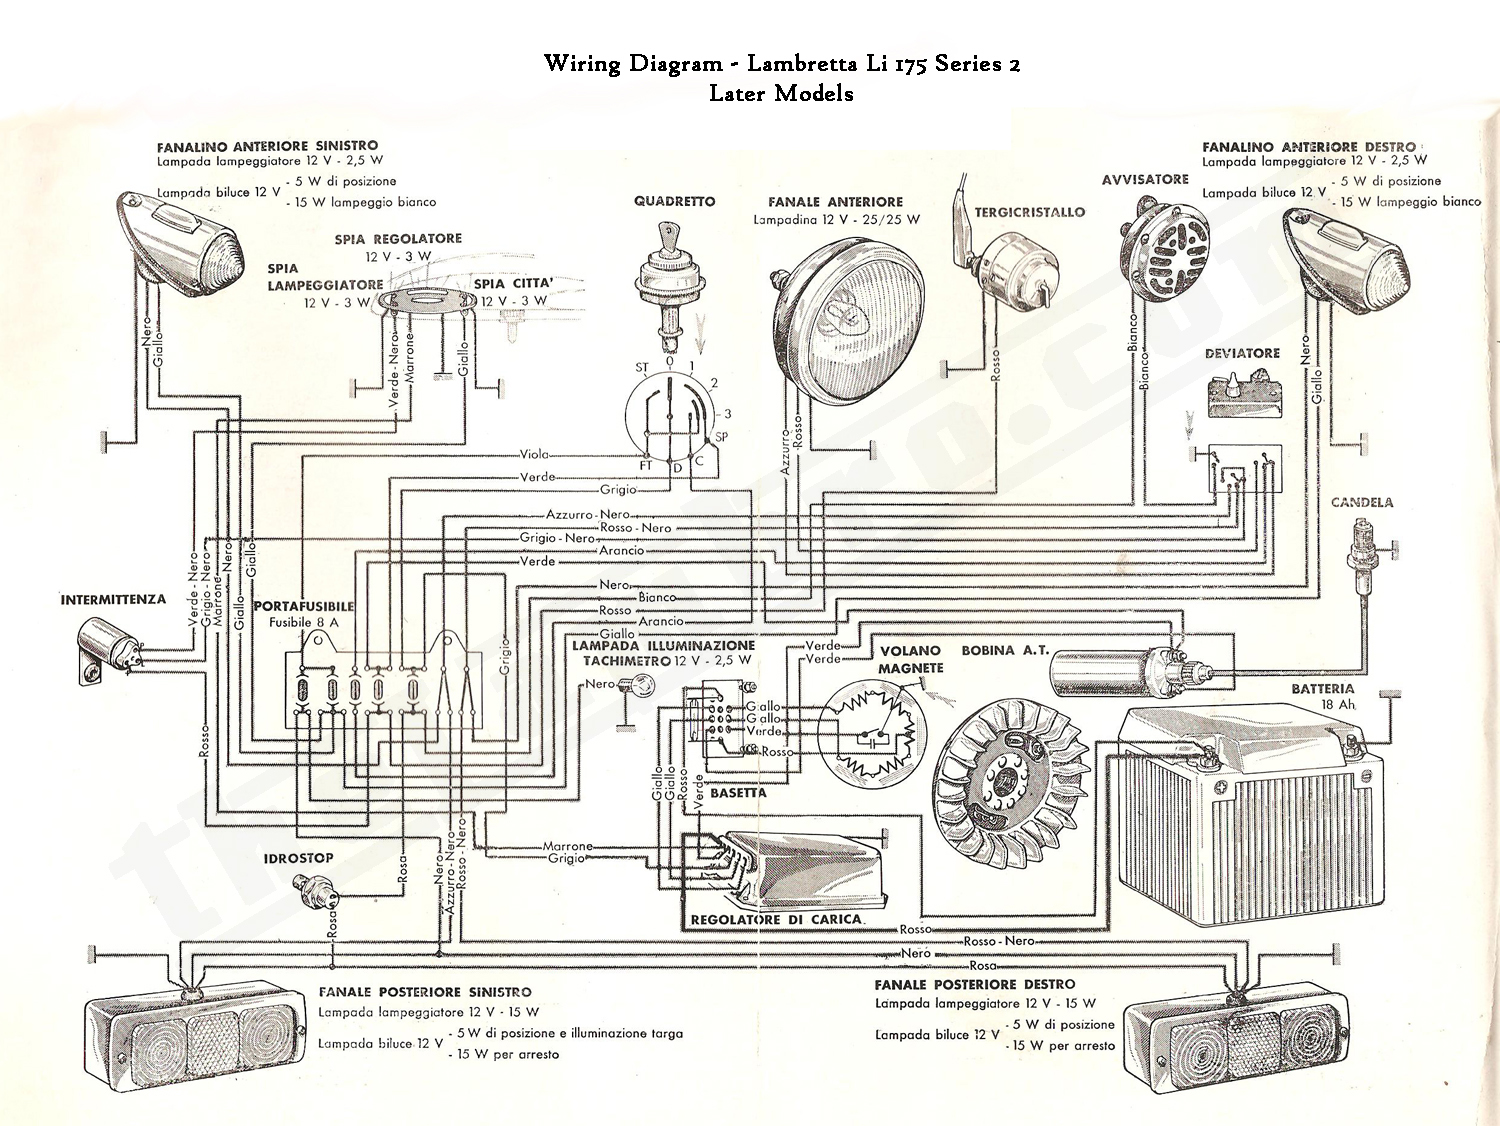 hight resolution of lambretta wiring diagram wiring diagram blog lambretta wiring loom diagram lambretta wiring diagram